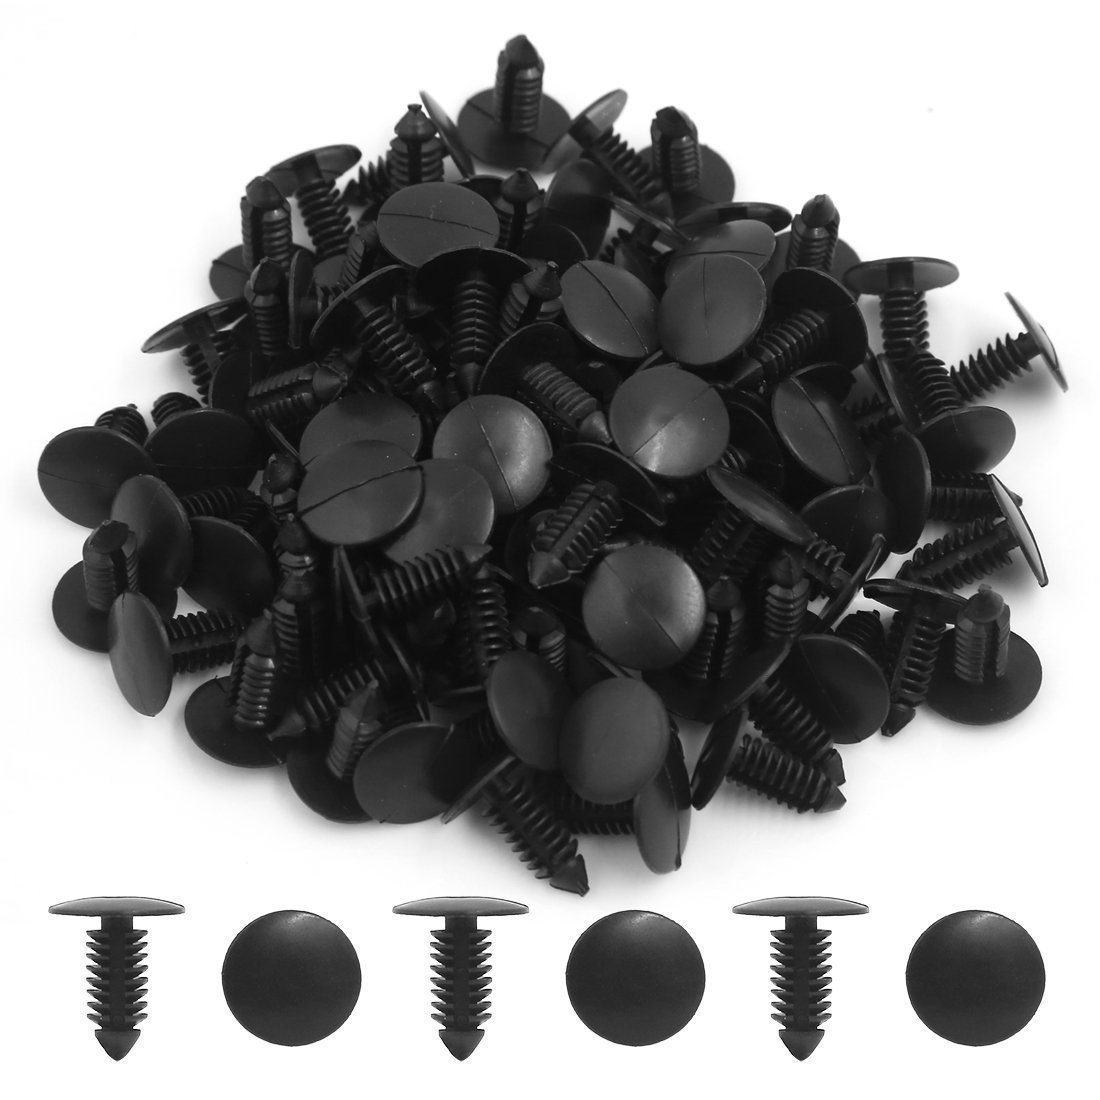 MANSHU 200 Pcs Car Plastic Trim Boot Rivets Push Clip Fastener, 6.4mm Hole Push Retainer Bumper Fender Shield Clips, Automotive Plastic Push Pins Bumper Clips, Car Plastic Rivets Retainers Screw.